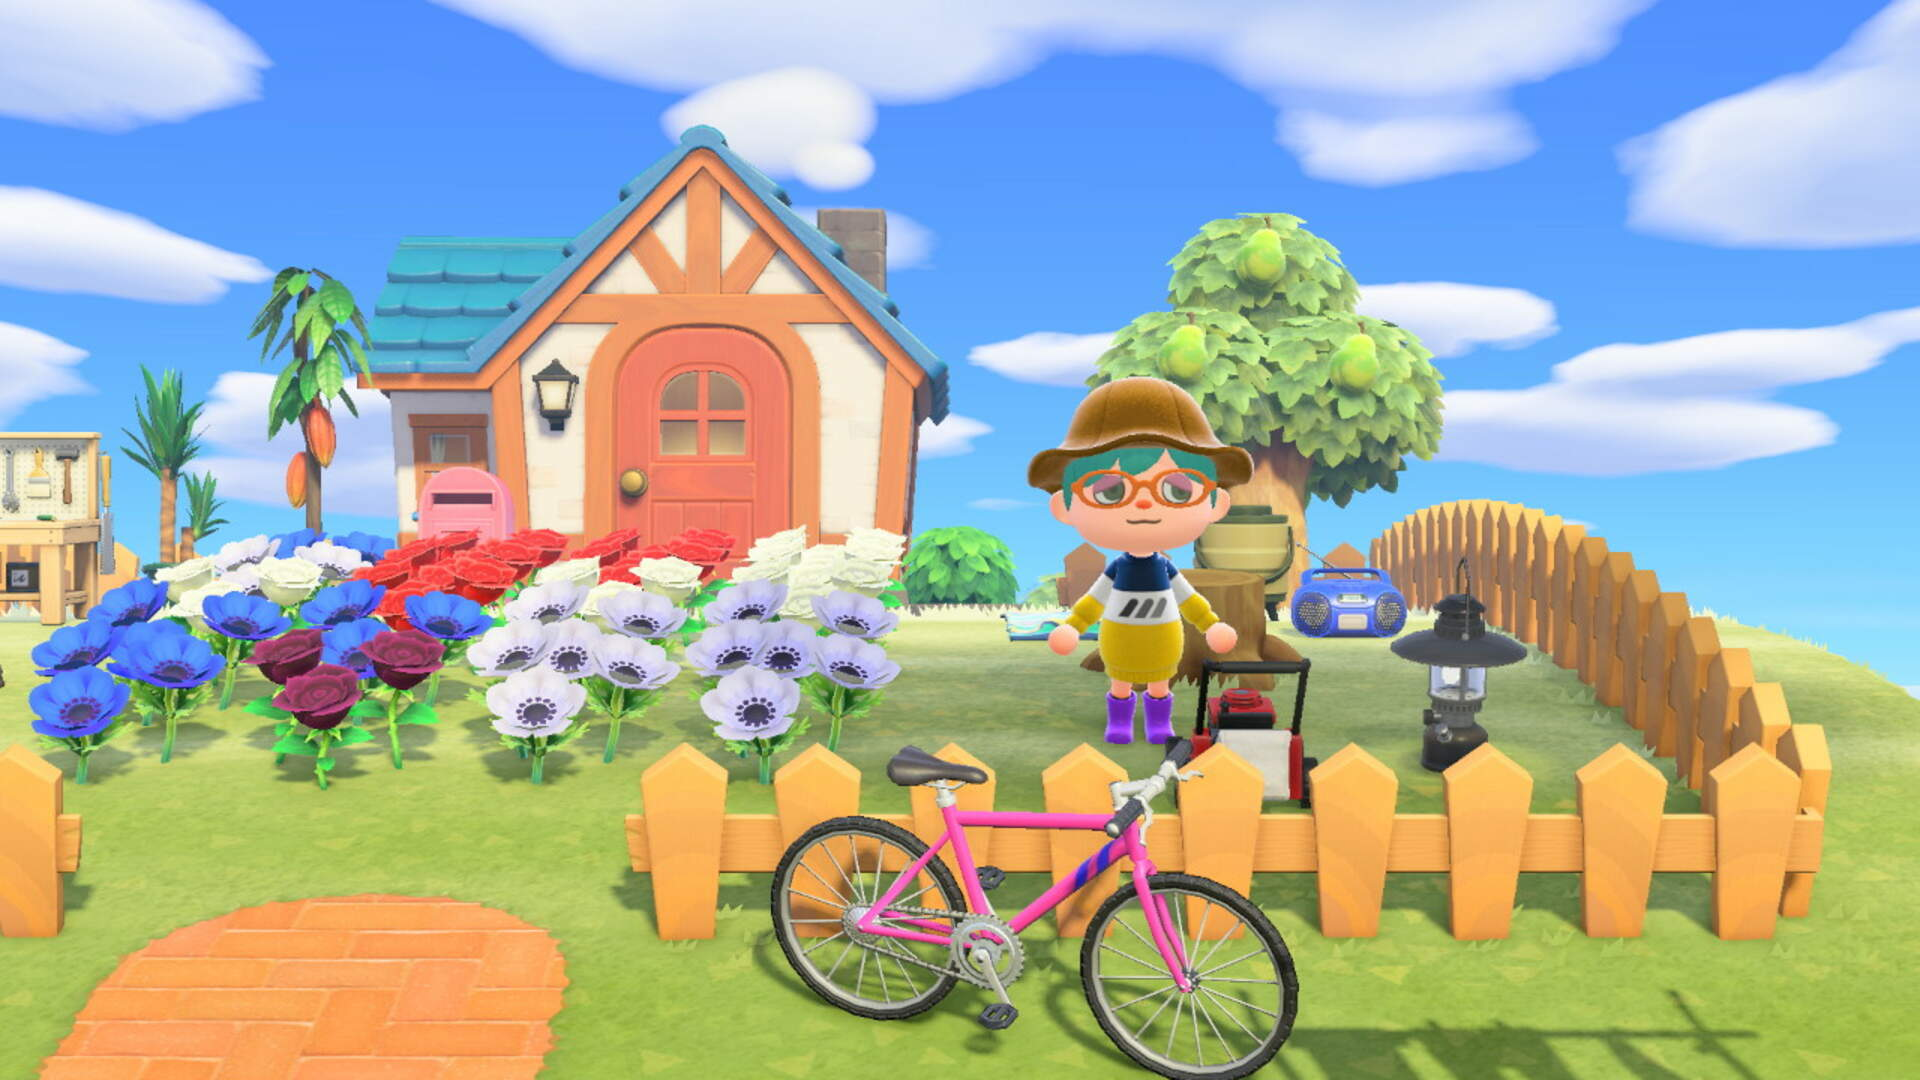 Animal Crossing: New Horizons Gets New Merchants, a Museum Expansion, and More This Week